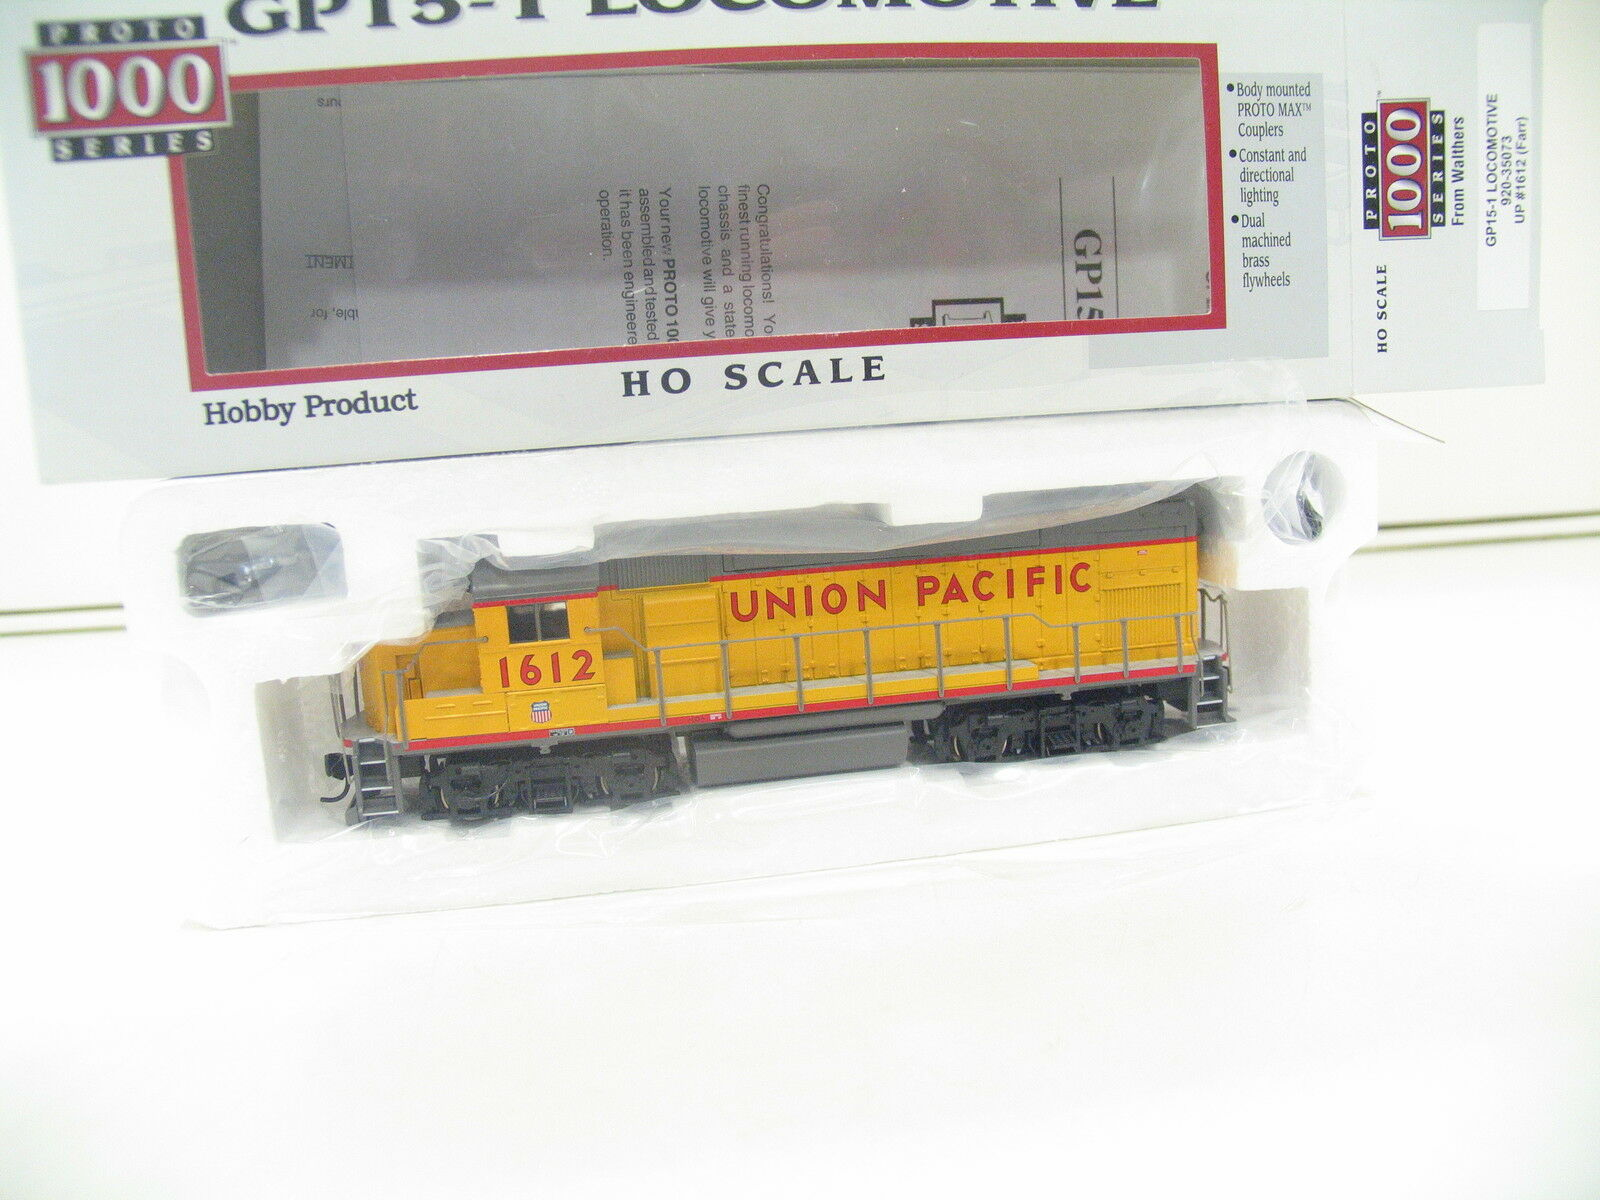 Walthers proto 1000 serie 920-35073 GP 15-1 Locomotive Union Pacific 1612 jl863